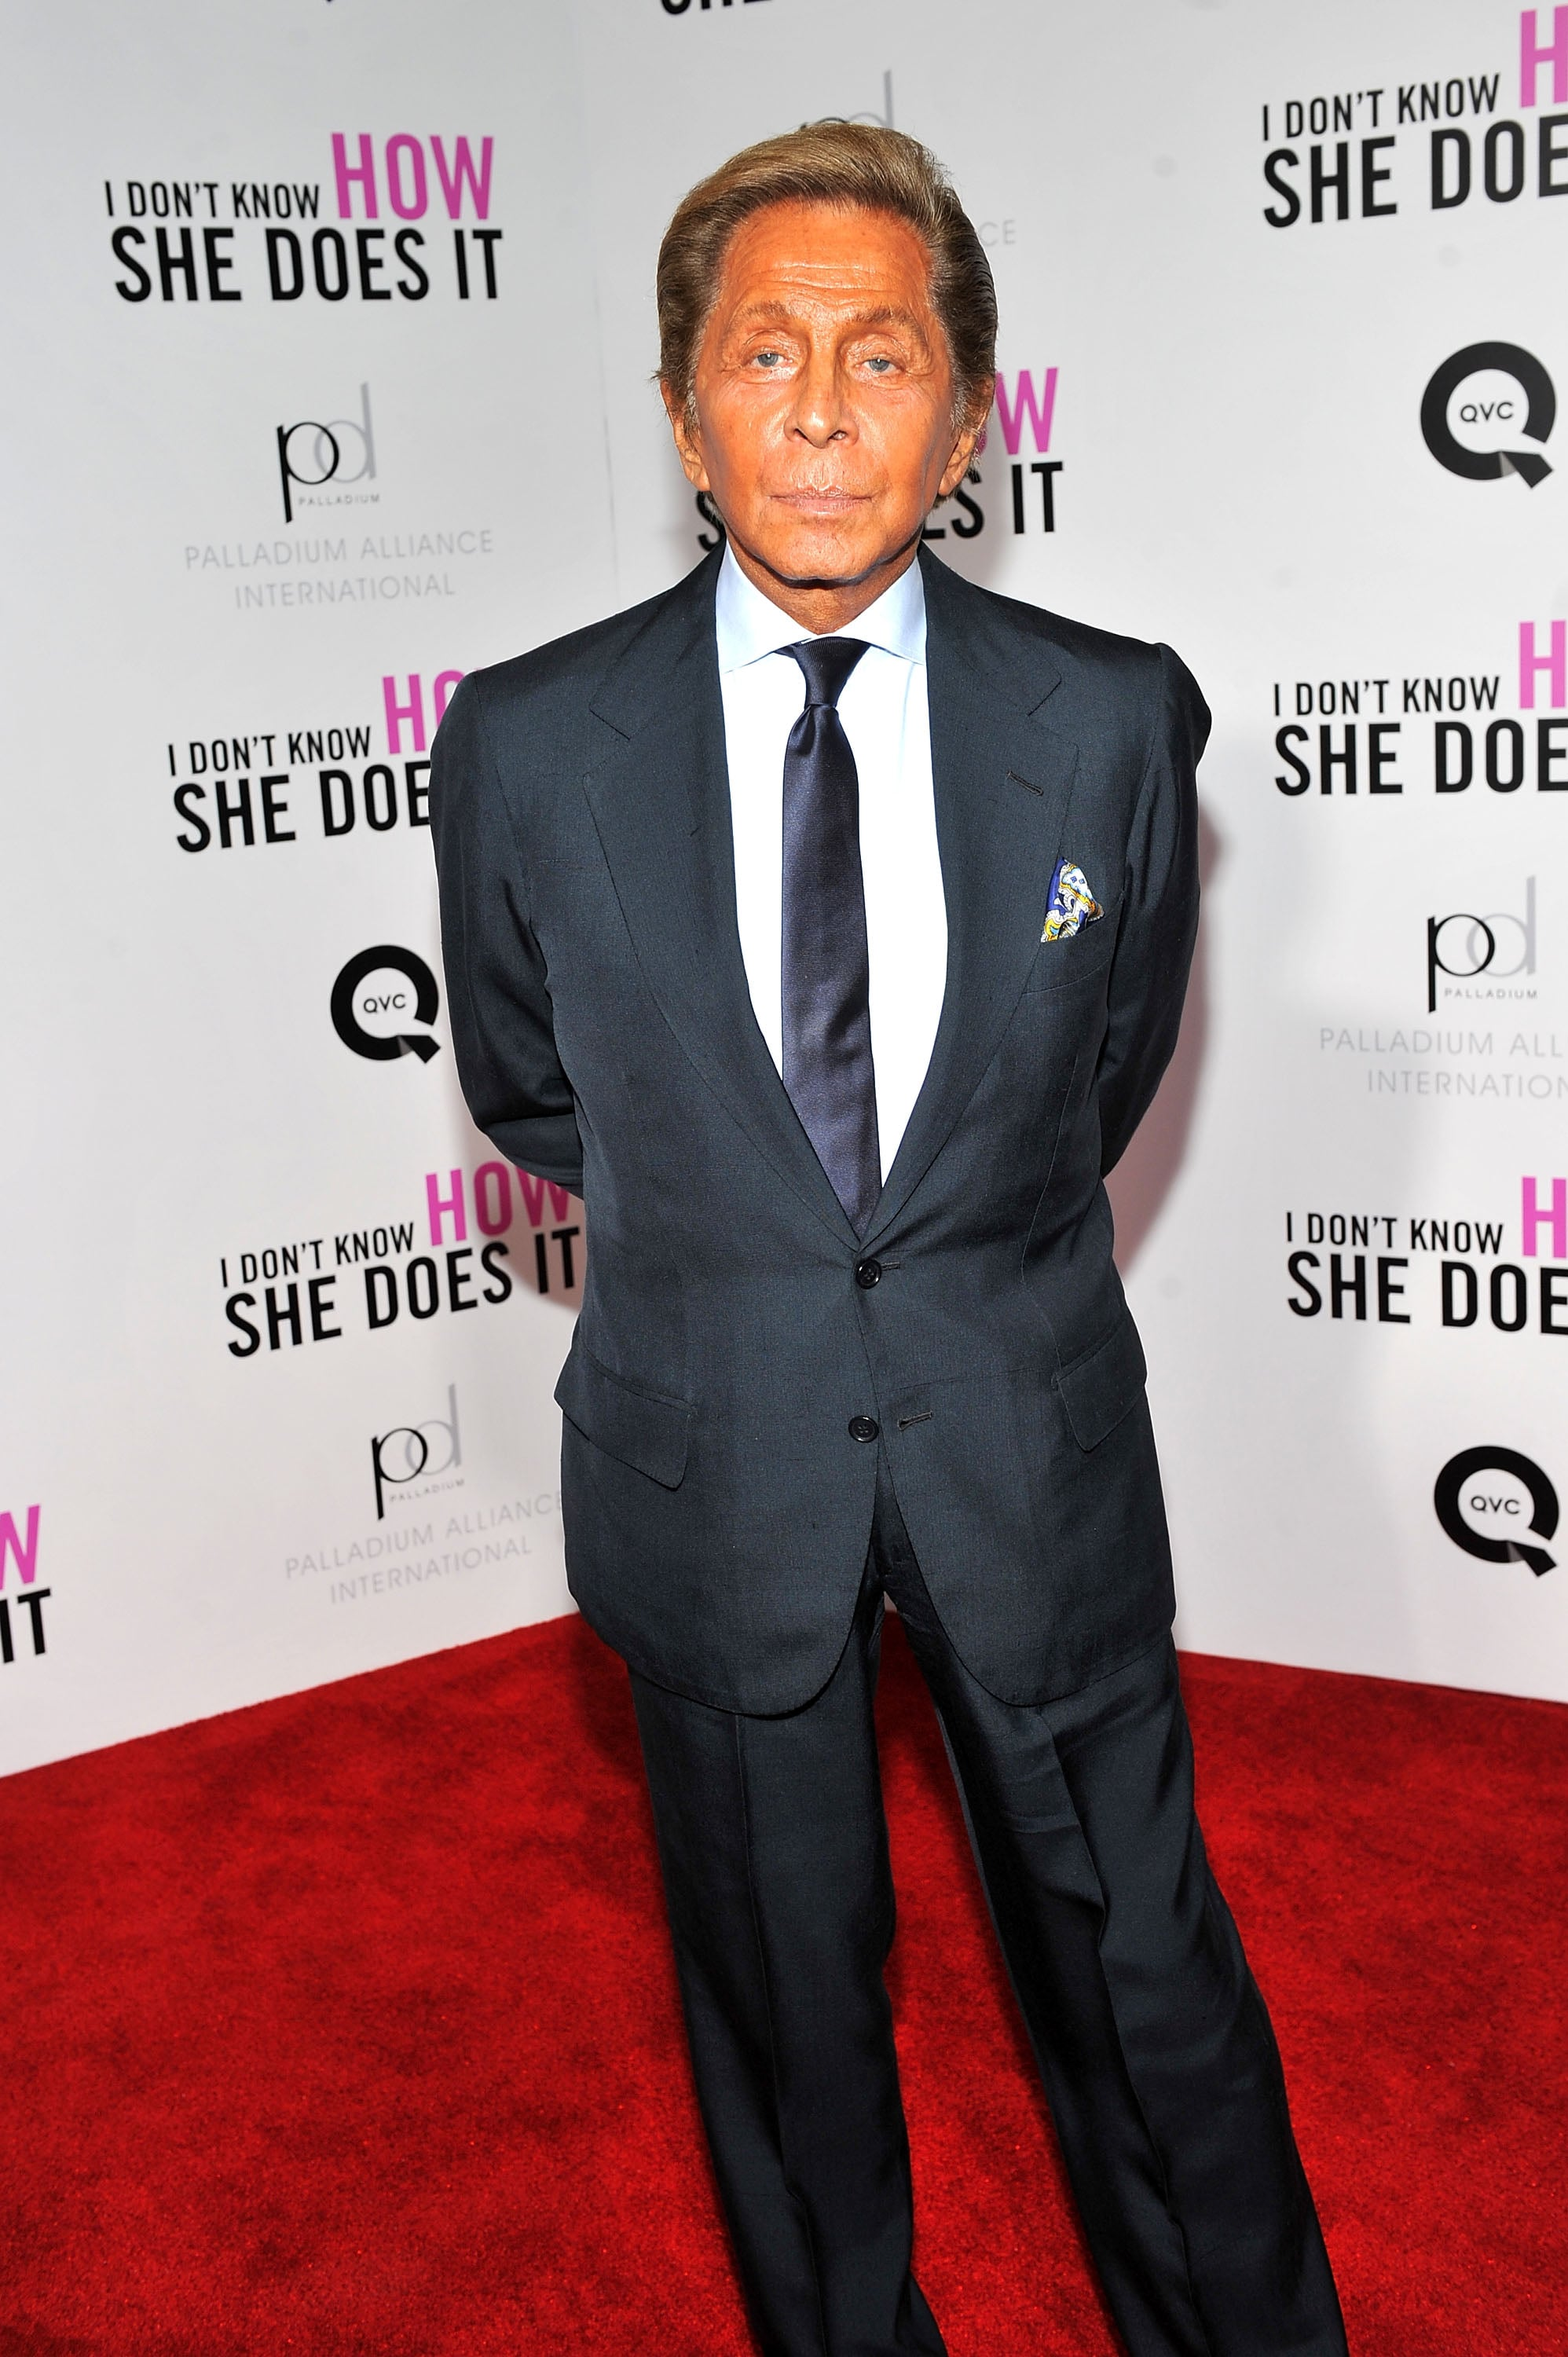 Designer Valentino stepped out to support SJP.